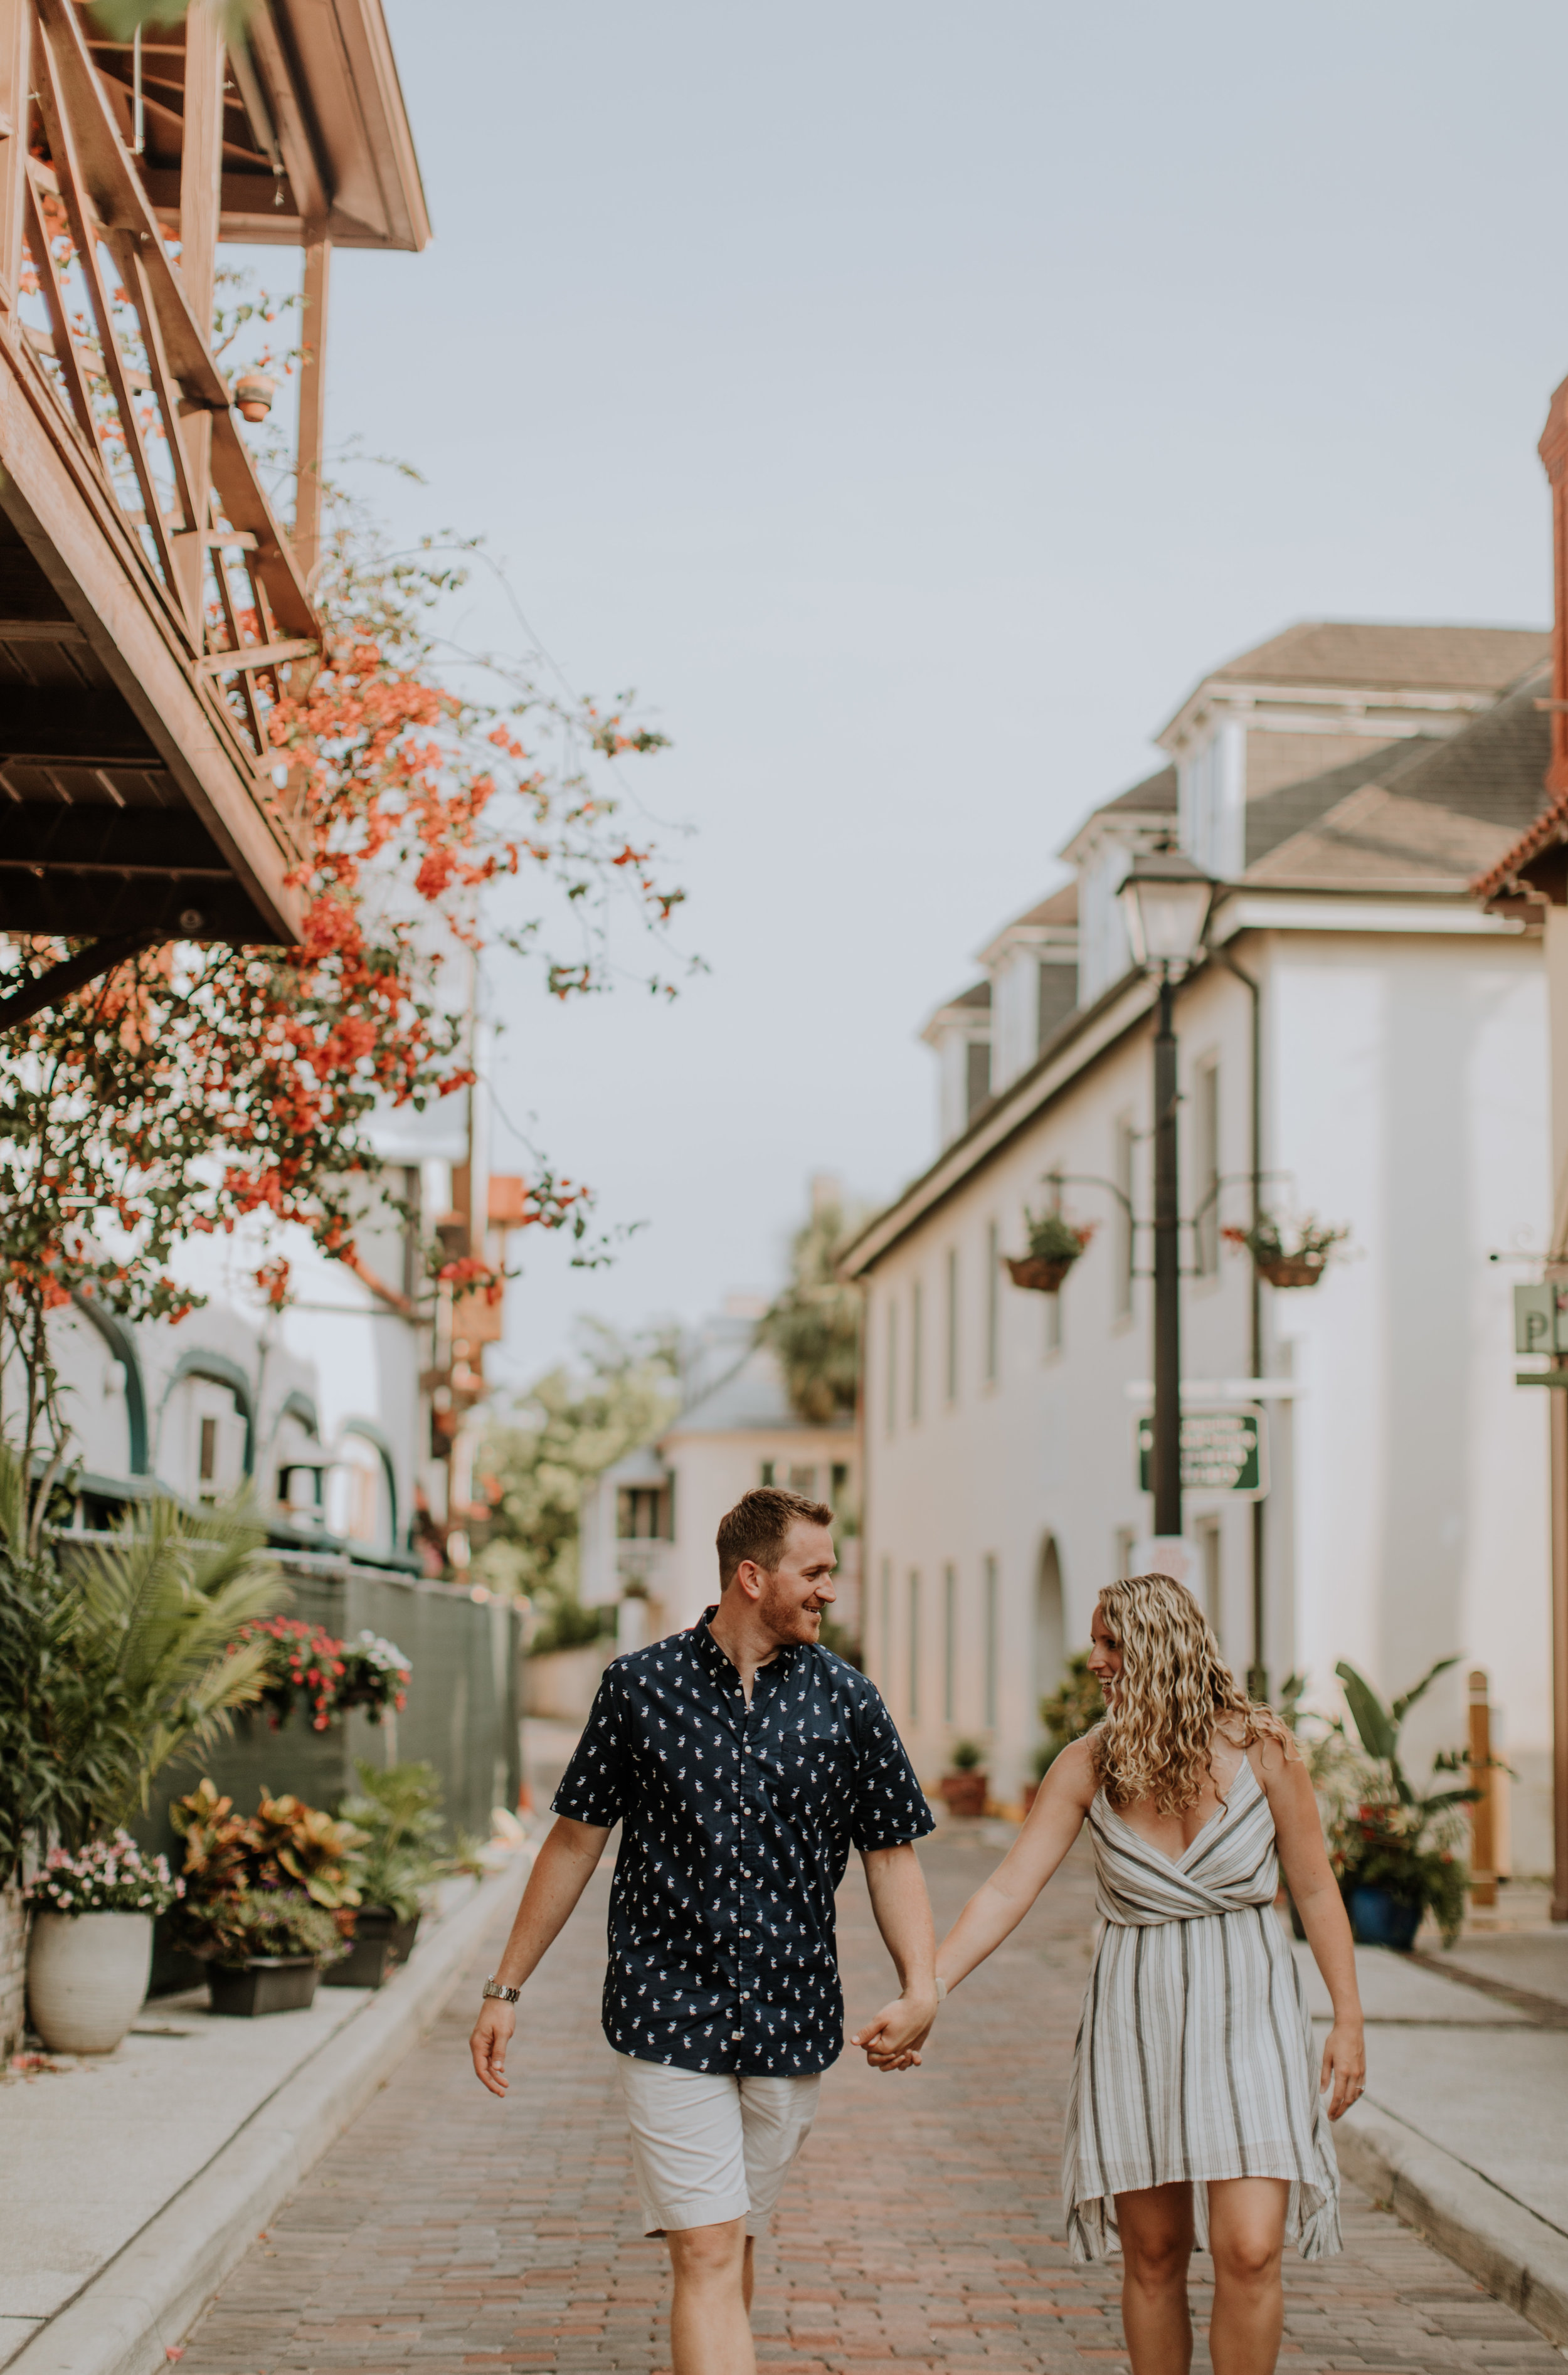 hillary&jimie_engagement (21 of 139).jpg